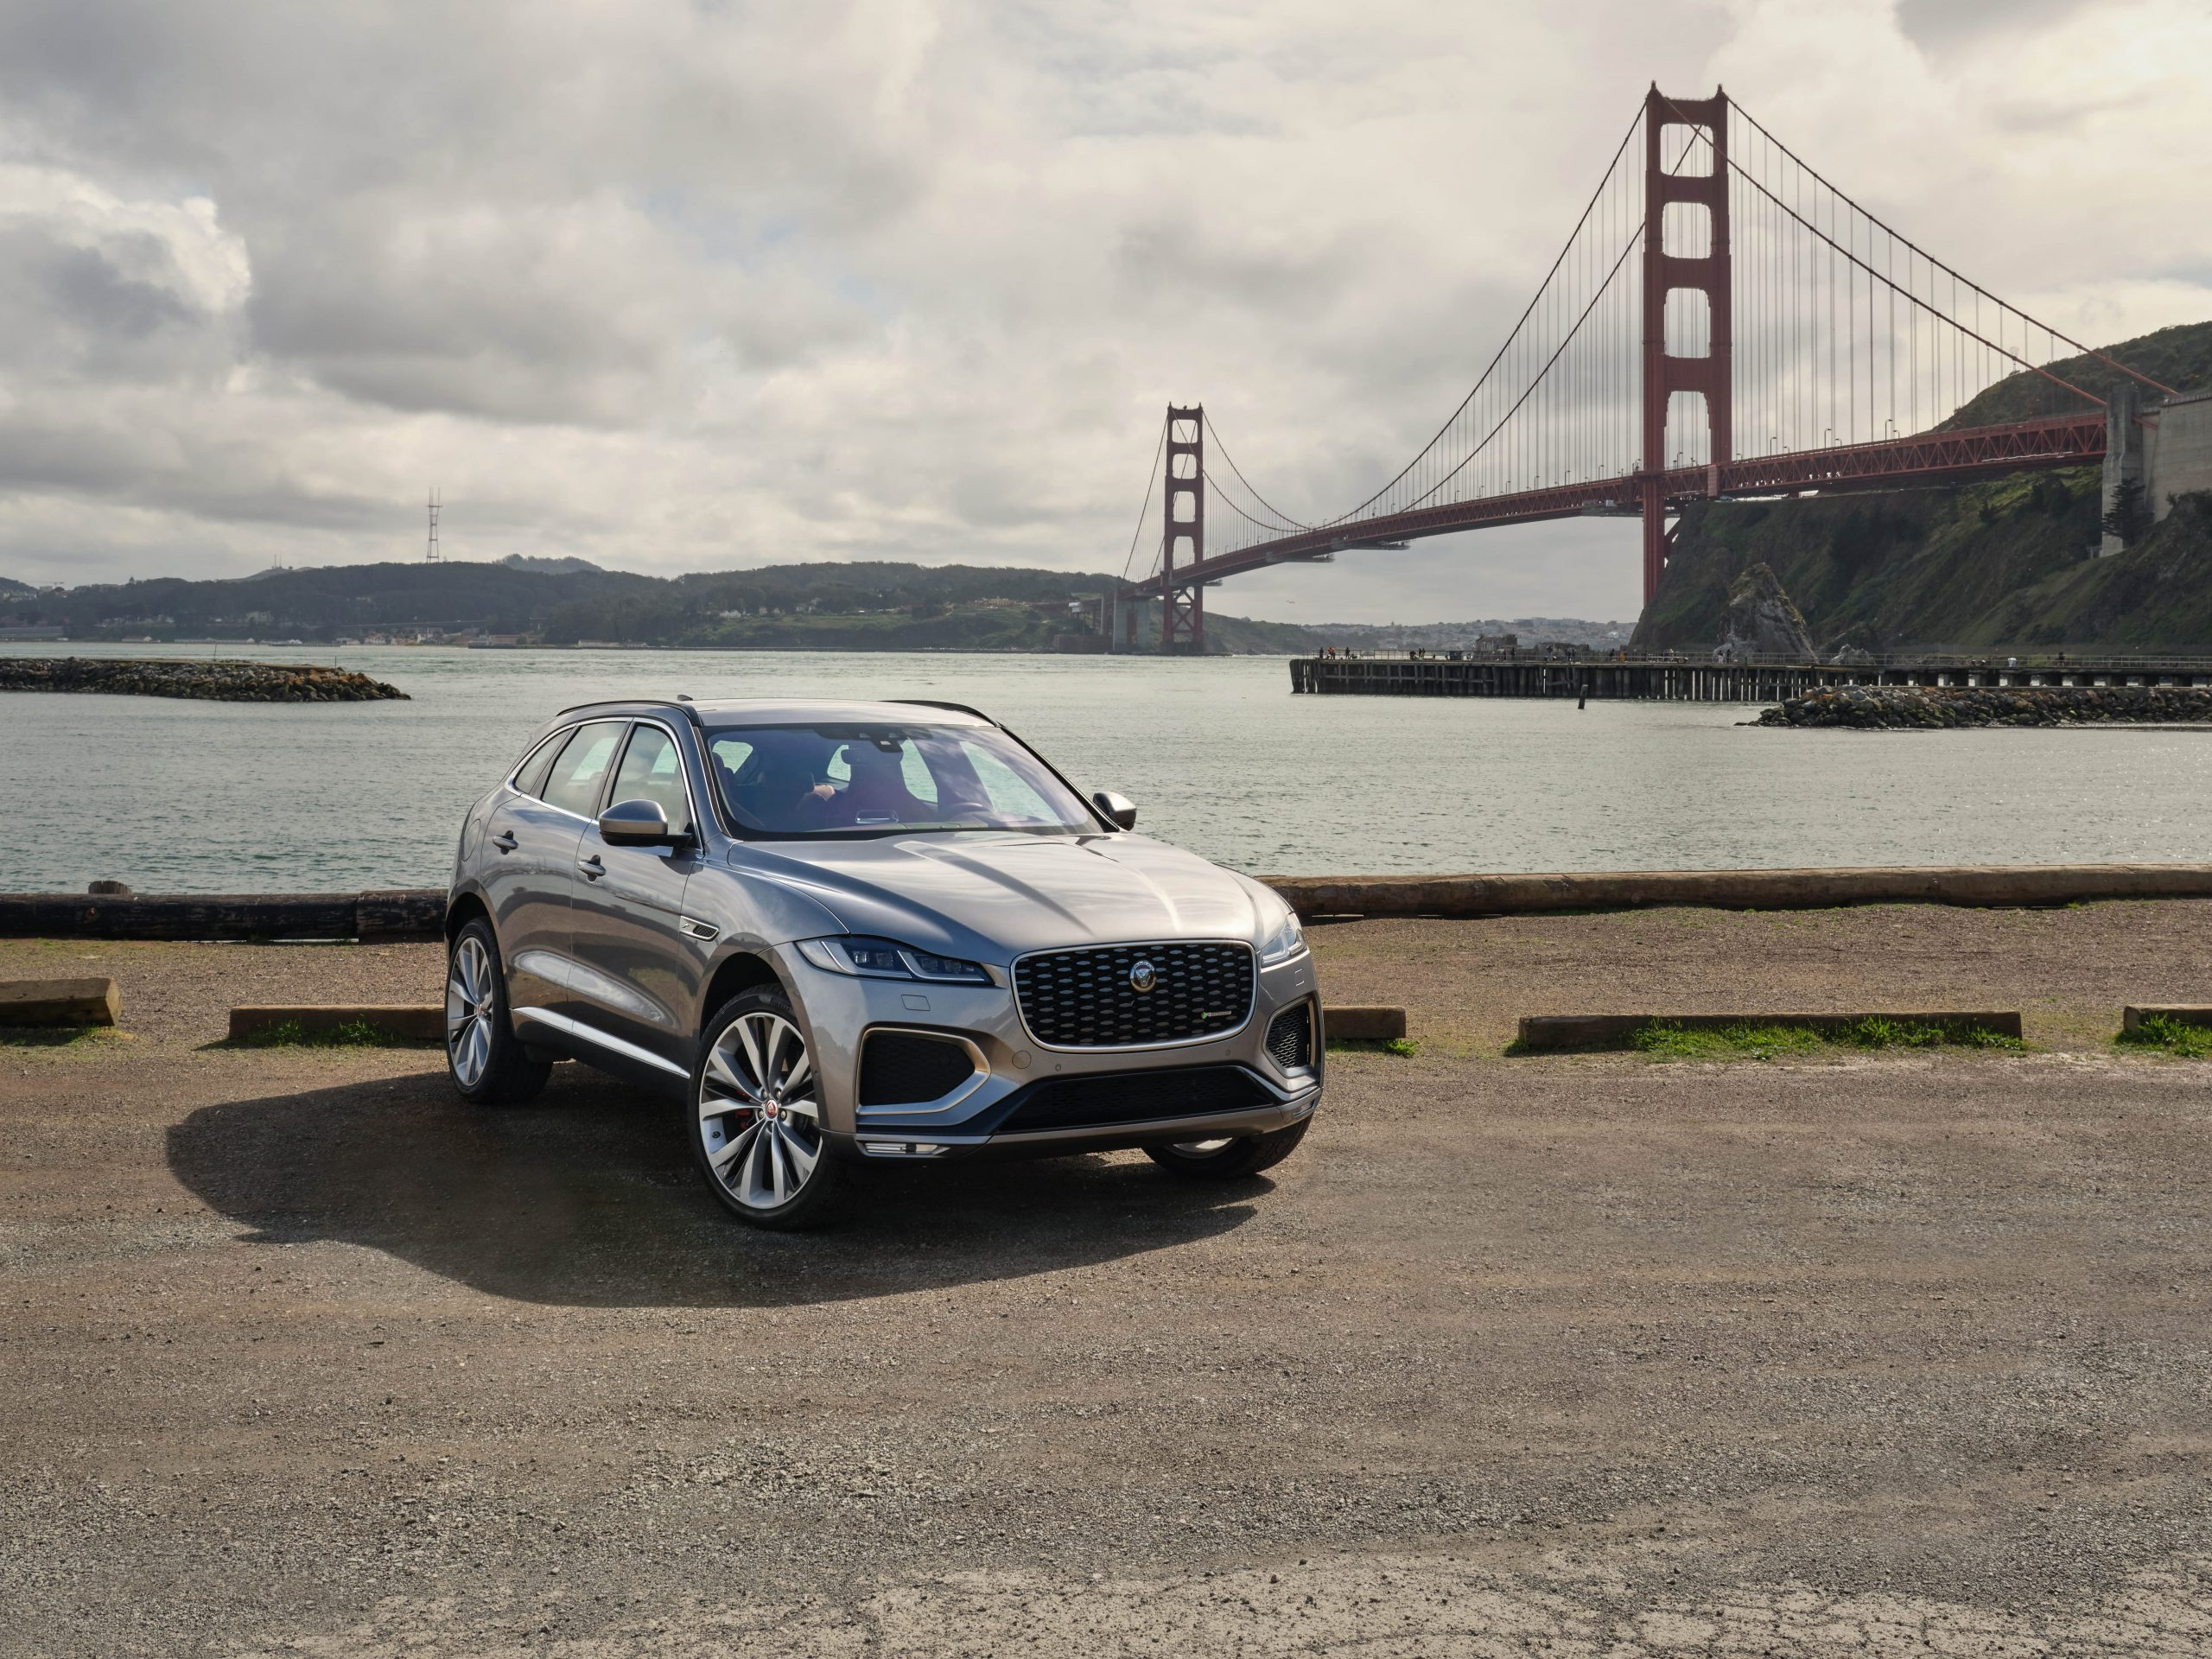 Jaguar F-Pace media services available